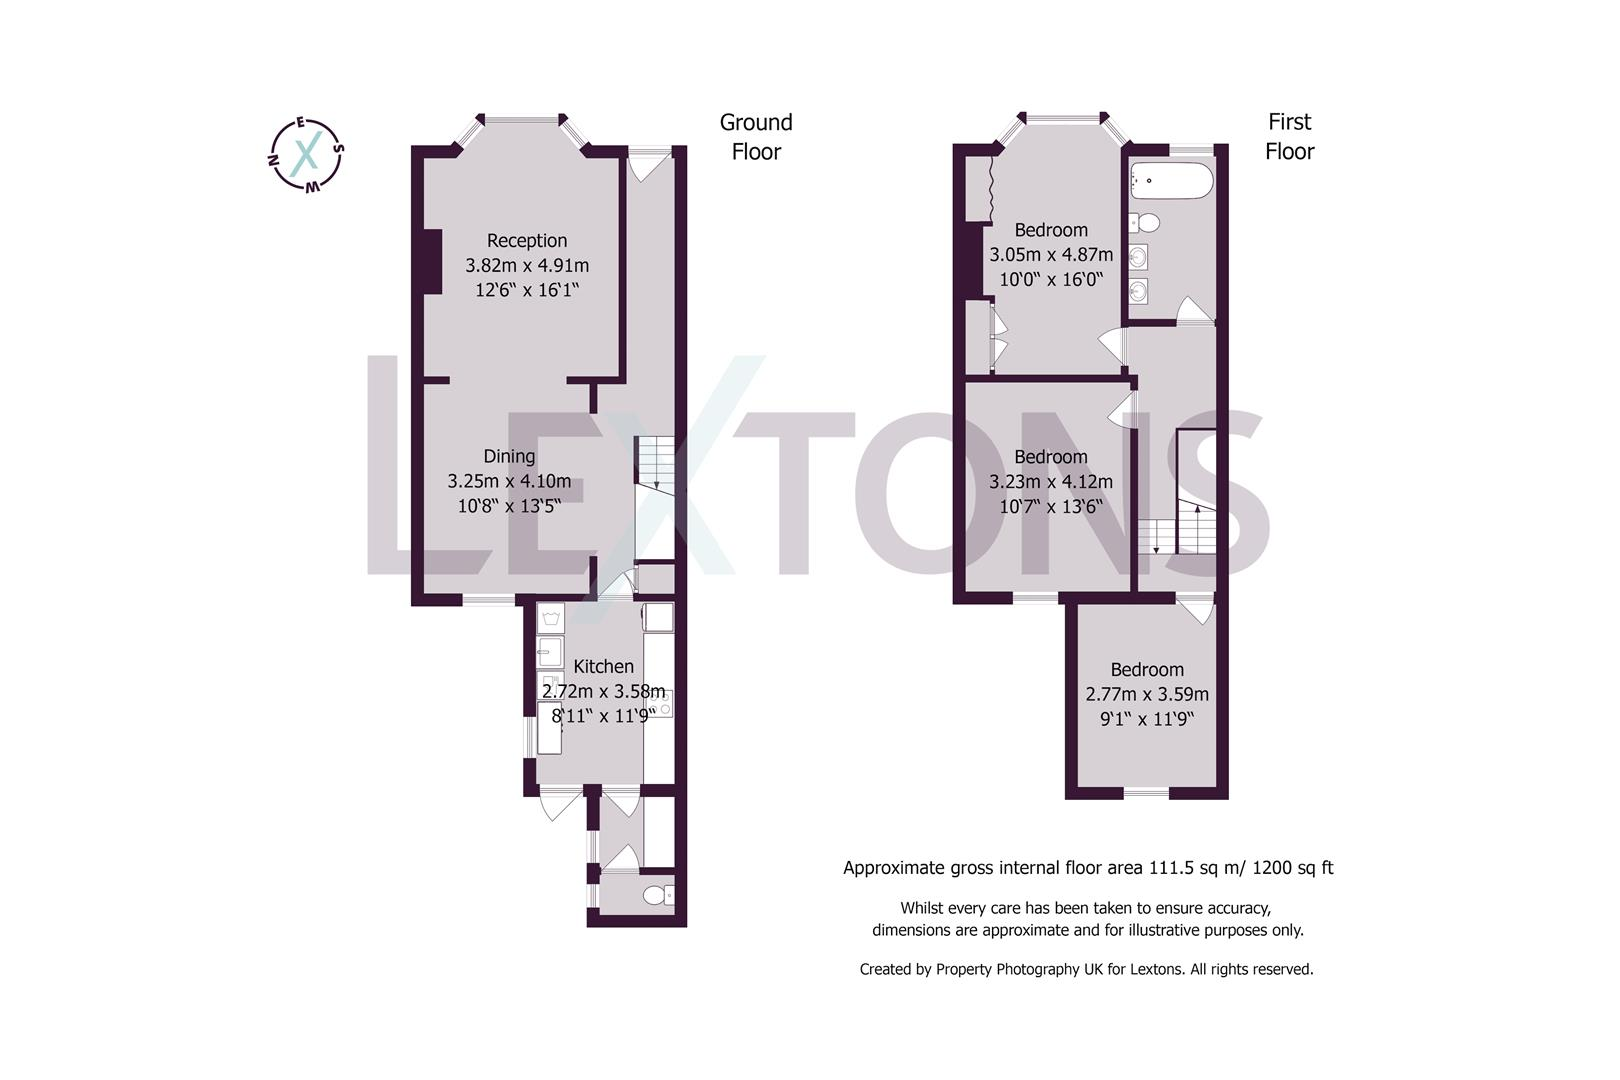 Floorplans For Brooker Street, Hove